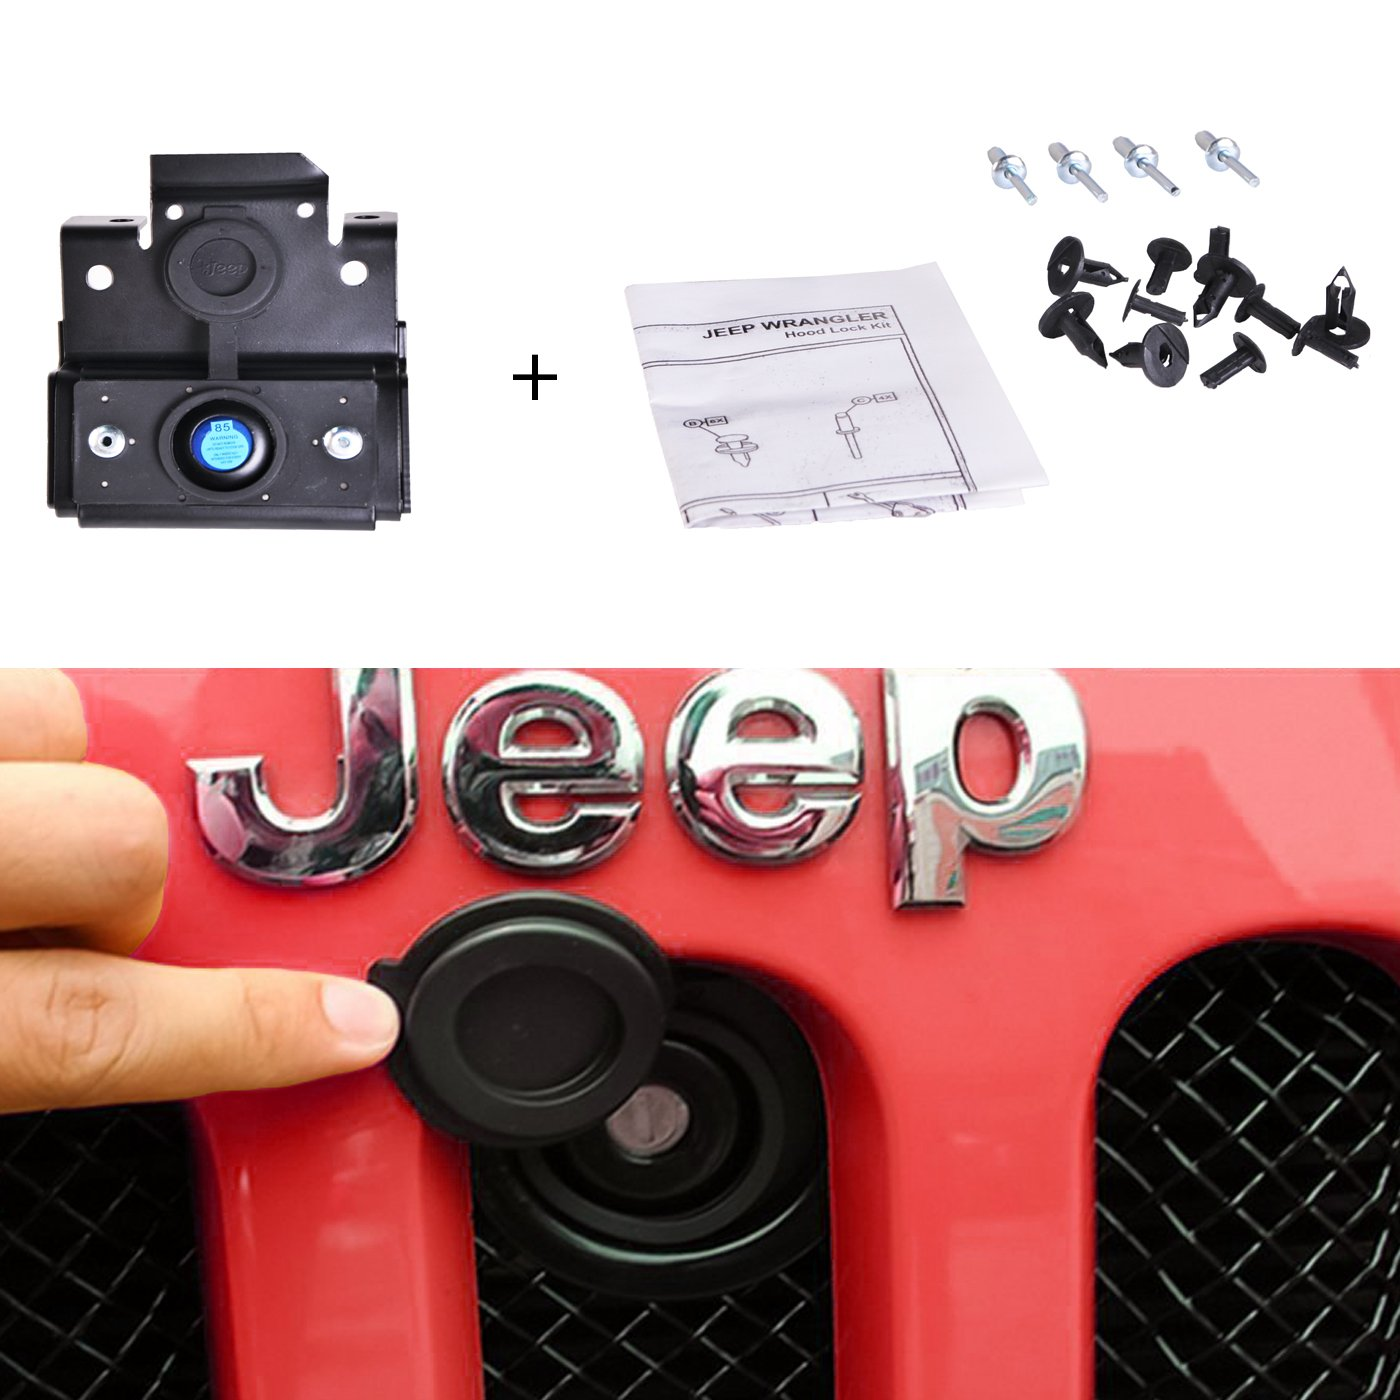 Black Friday 2018 Best Car Alarm 2017 Deals And Discounts New Addon Remote Start Fits Pushtostart Nissan Infiniti Vehicles W 2 Omotor Hood Lock Anti Theft Kit Assembly For 2007 Jeep Wrangler Jk Unlimited Door 4 System 82213051 Ab